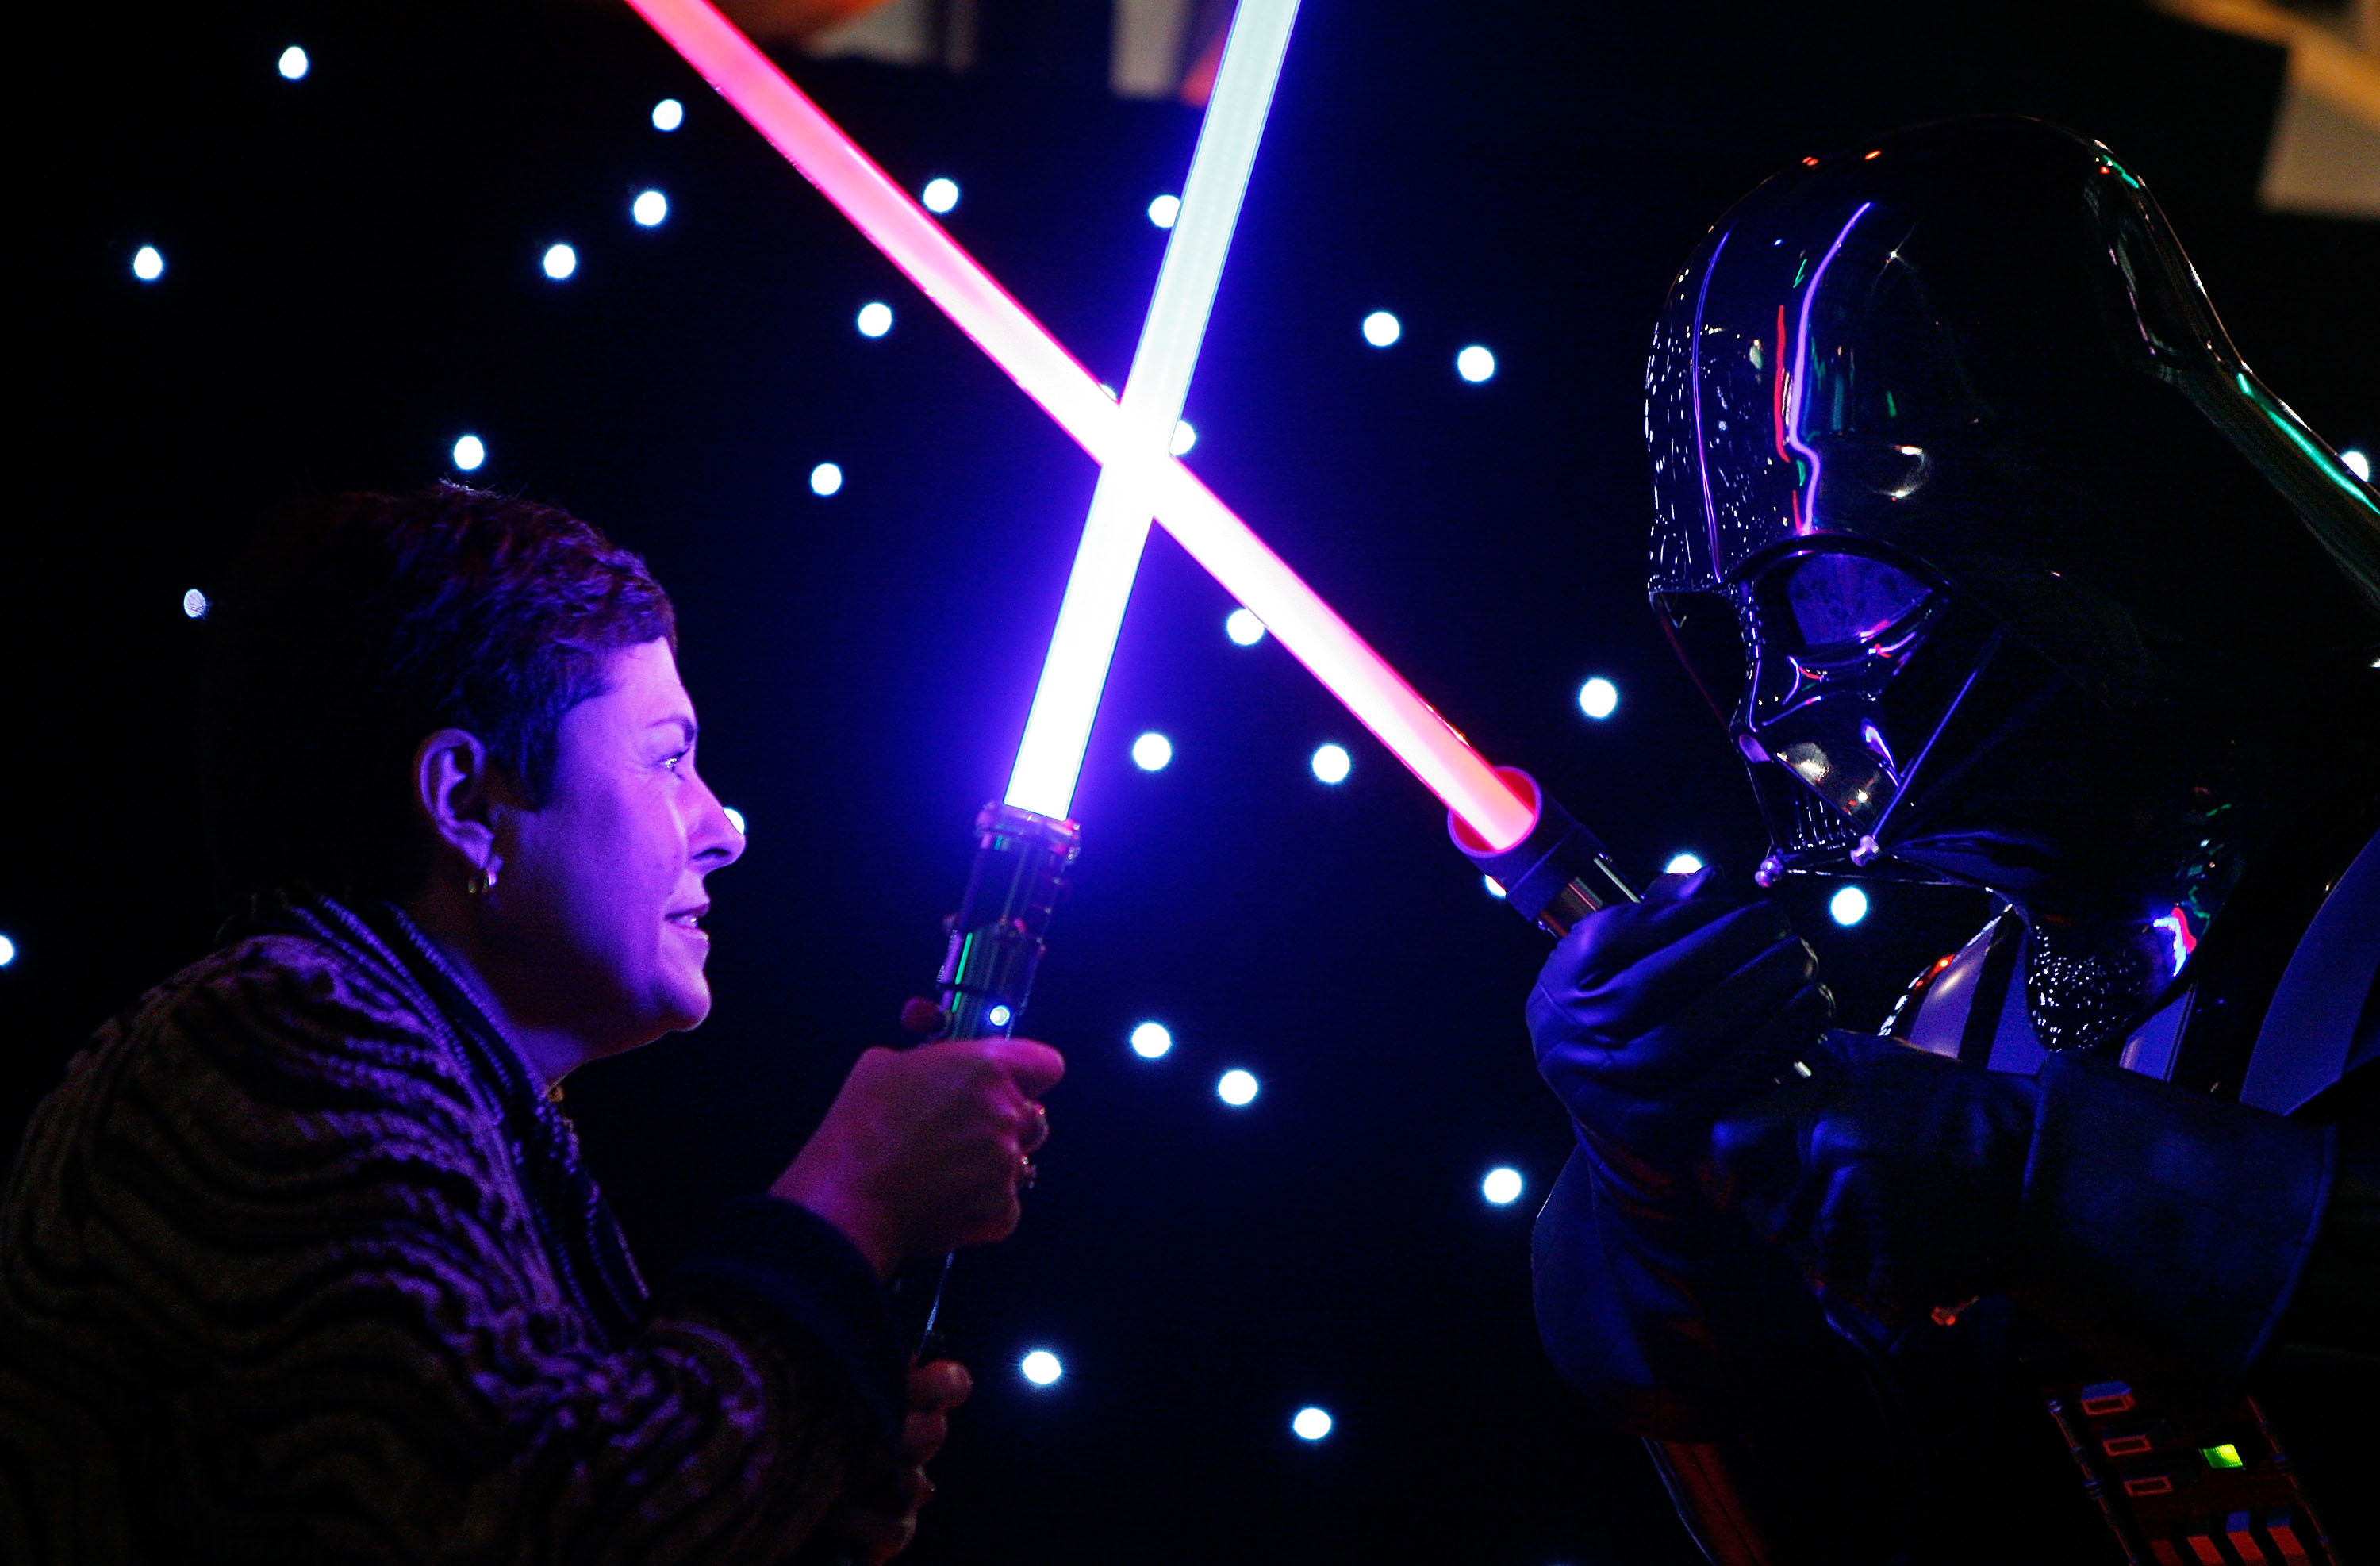 Lynne Kosky (L), Victoria's Minister for Public Transport and Minister for the Arts has a lightsaber battle with an actor dressed as Darth Vader during a preview to the 'Star Wars: Where Science Meets Imagination' exhibition at Scienceworks on June 2, 2009 in Melbourne, Australia.